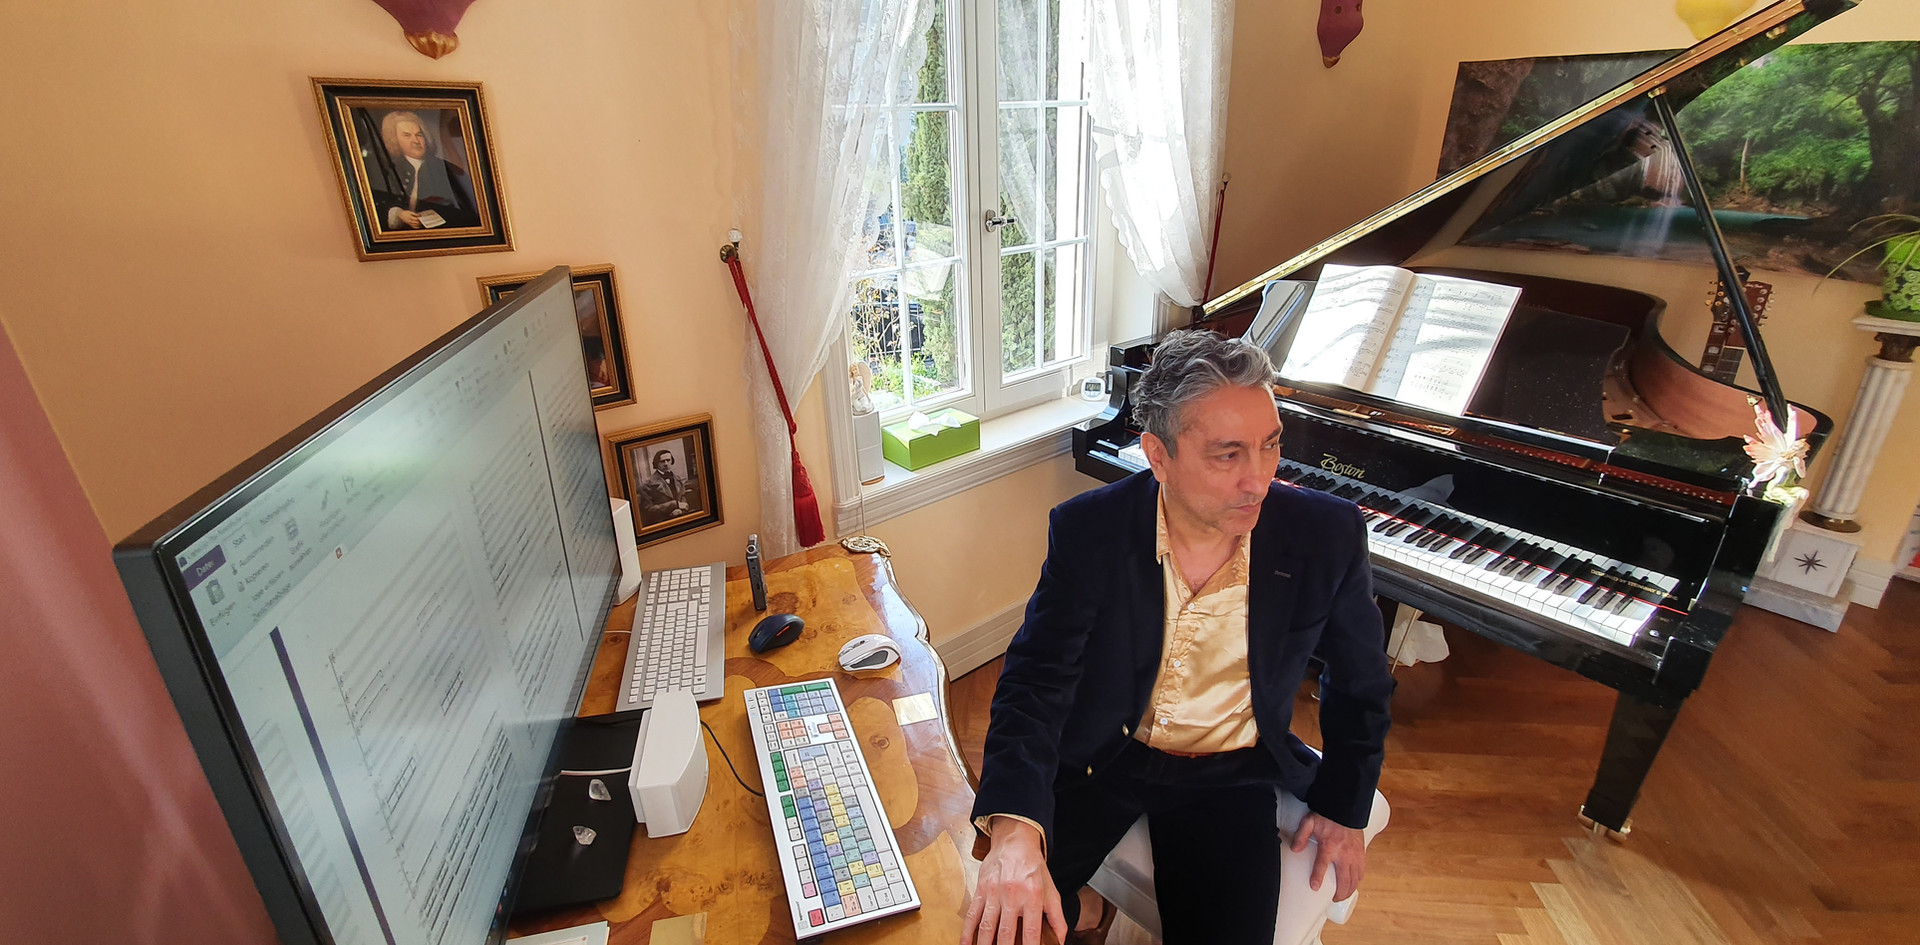 Saeed Habibzadeh - Beyond Notes - Music Studio 4 - Official